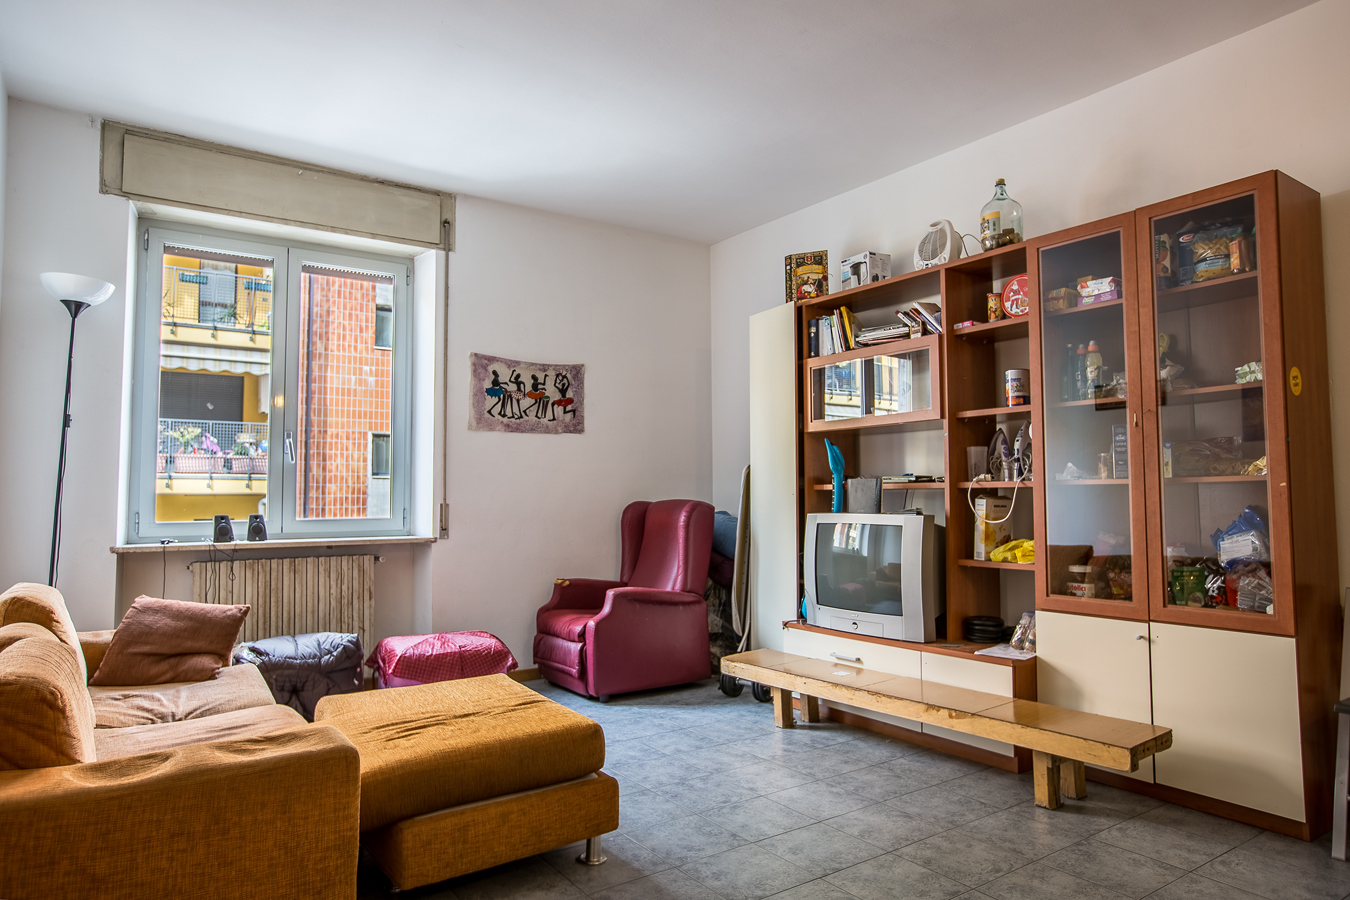 Student Apartment for rent in Via Monte San Genesio, 21, 1° floor, in Milano, Italy